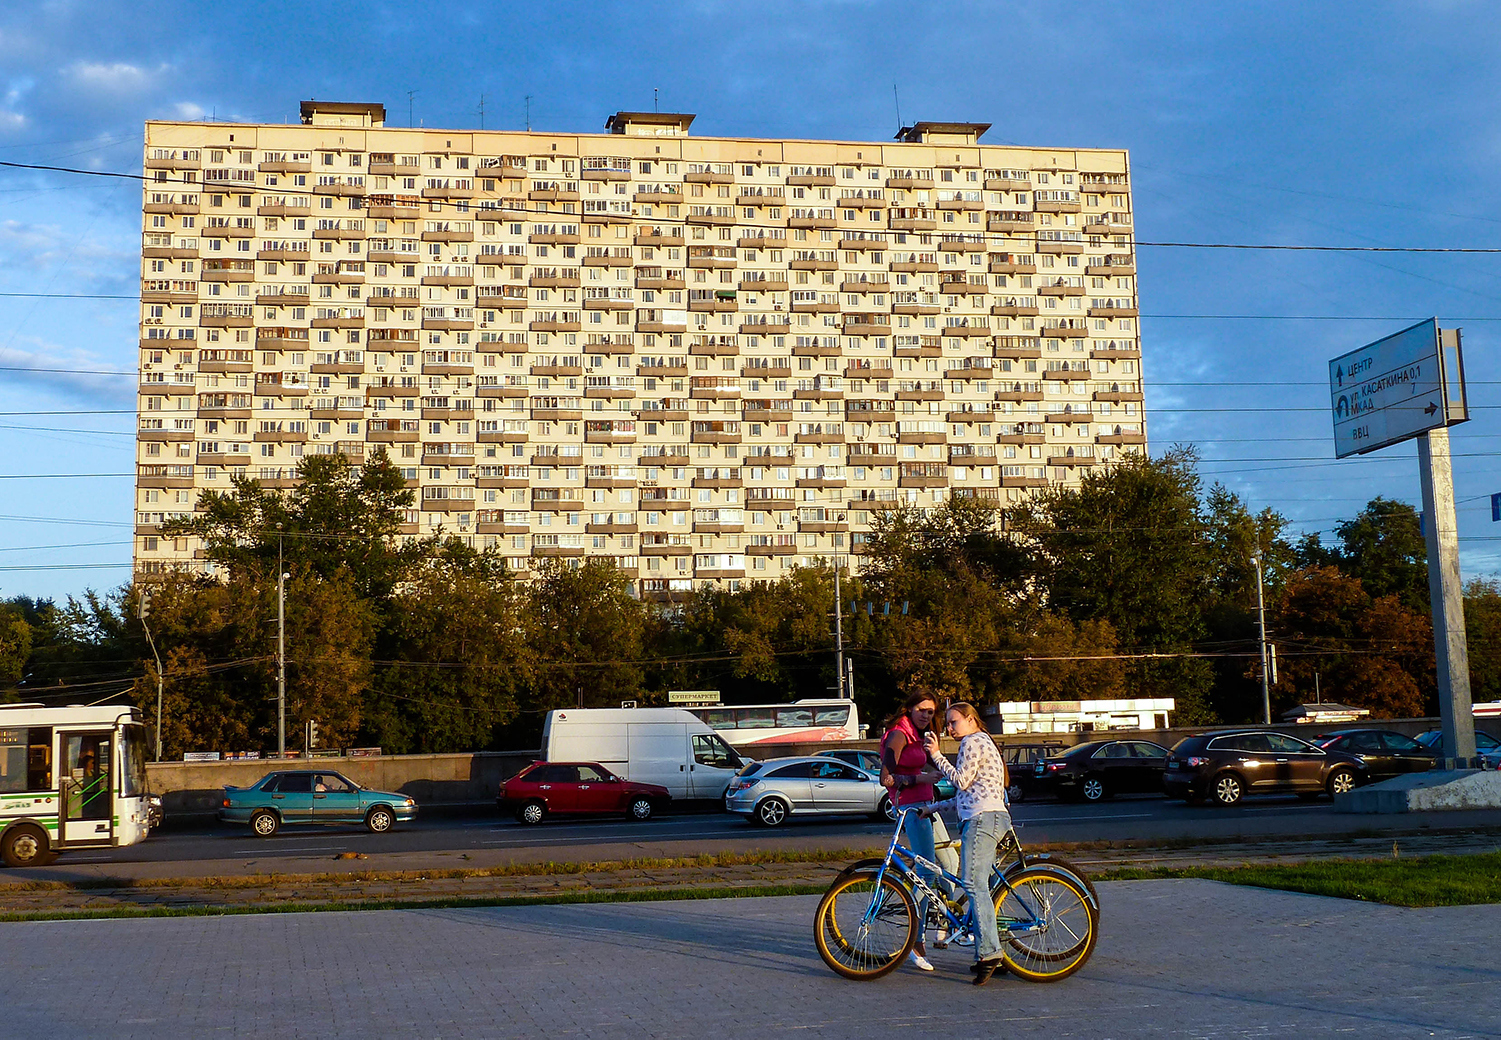 <p>Designed by Viktor Andreyev (who also did the Hotel Cosmos just down the road), this 25-storey tower block dates from 1968 and is something of a Moscow landmark. The trees block the stilts that give it its unusual name, the House on Chicken Legs (Дом на ножках in Russian). </p>